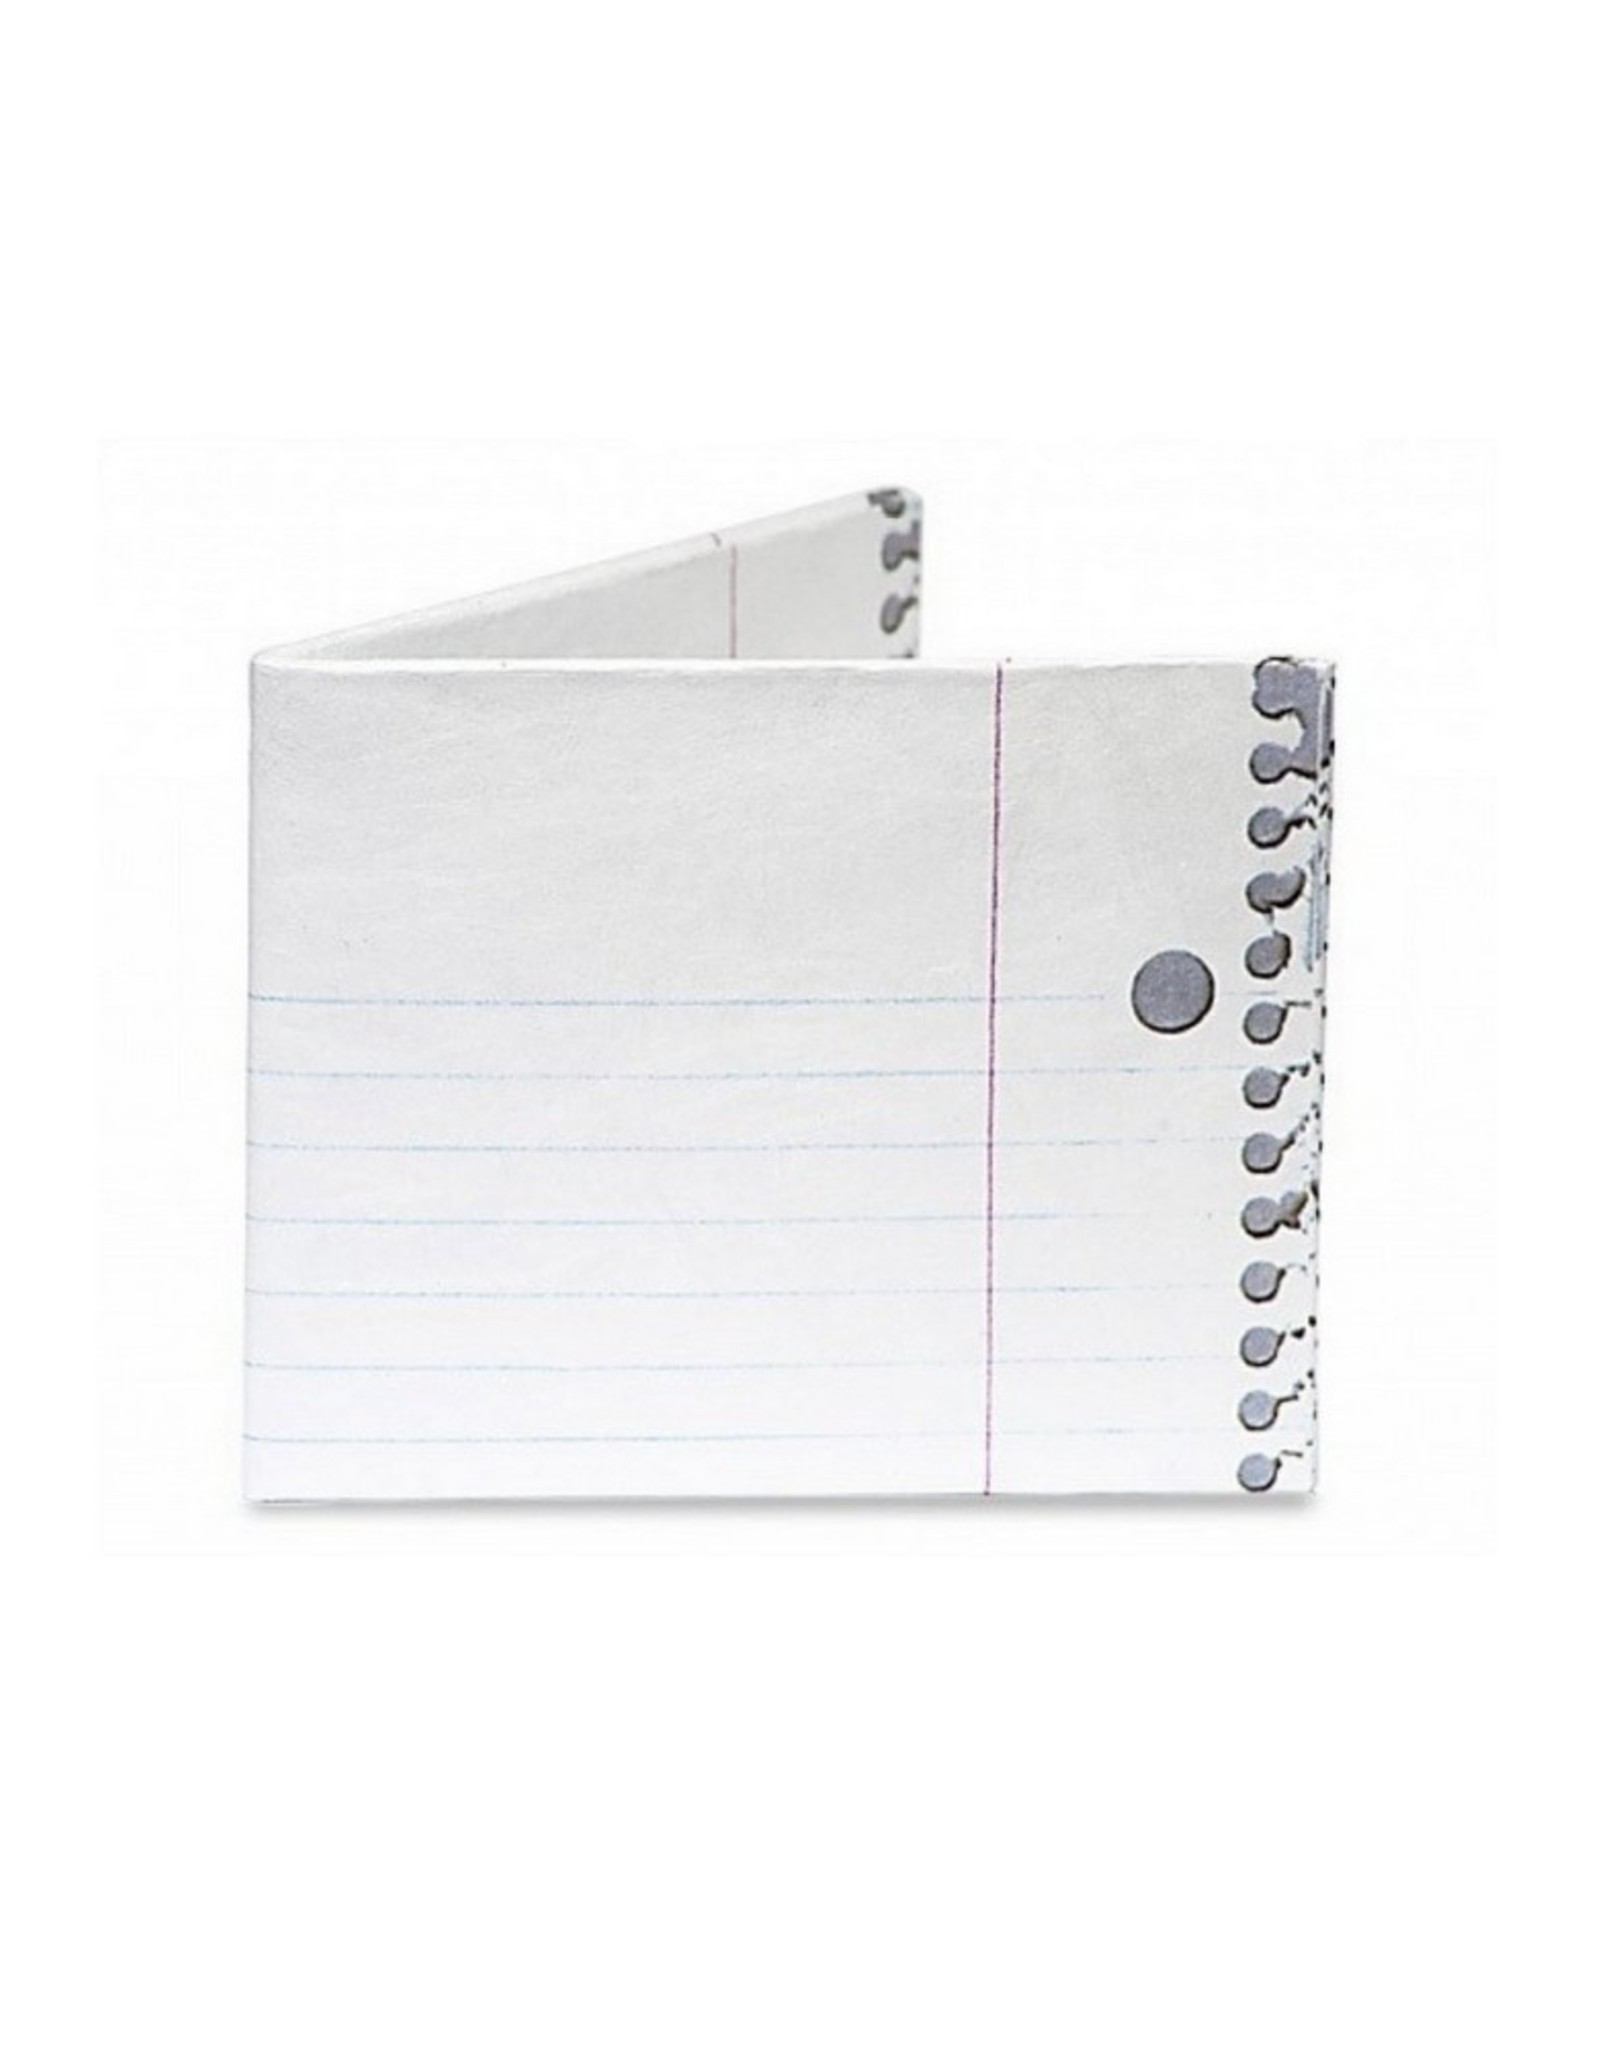 Mighty Wallet Mighty Wallet Ring Binder